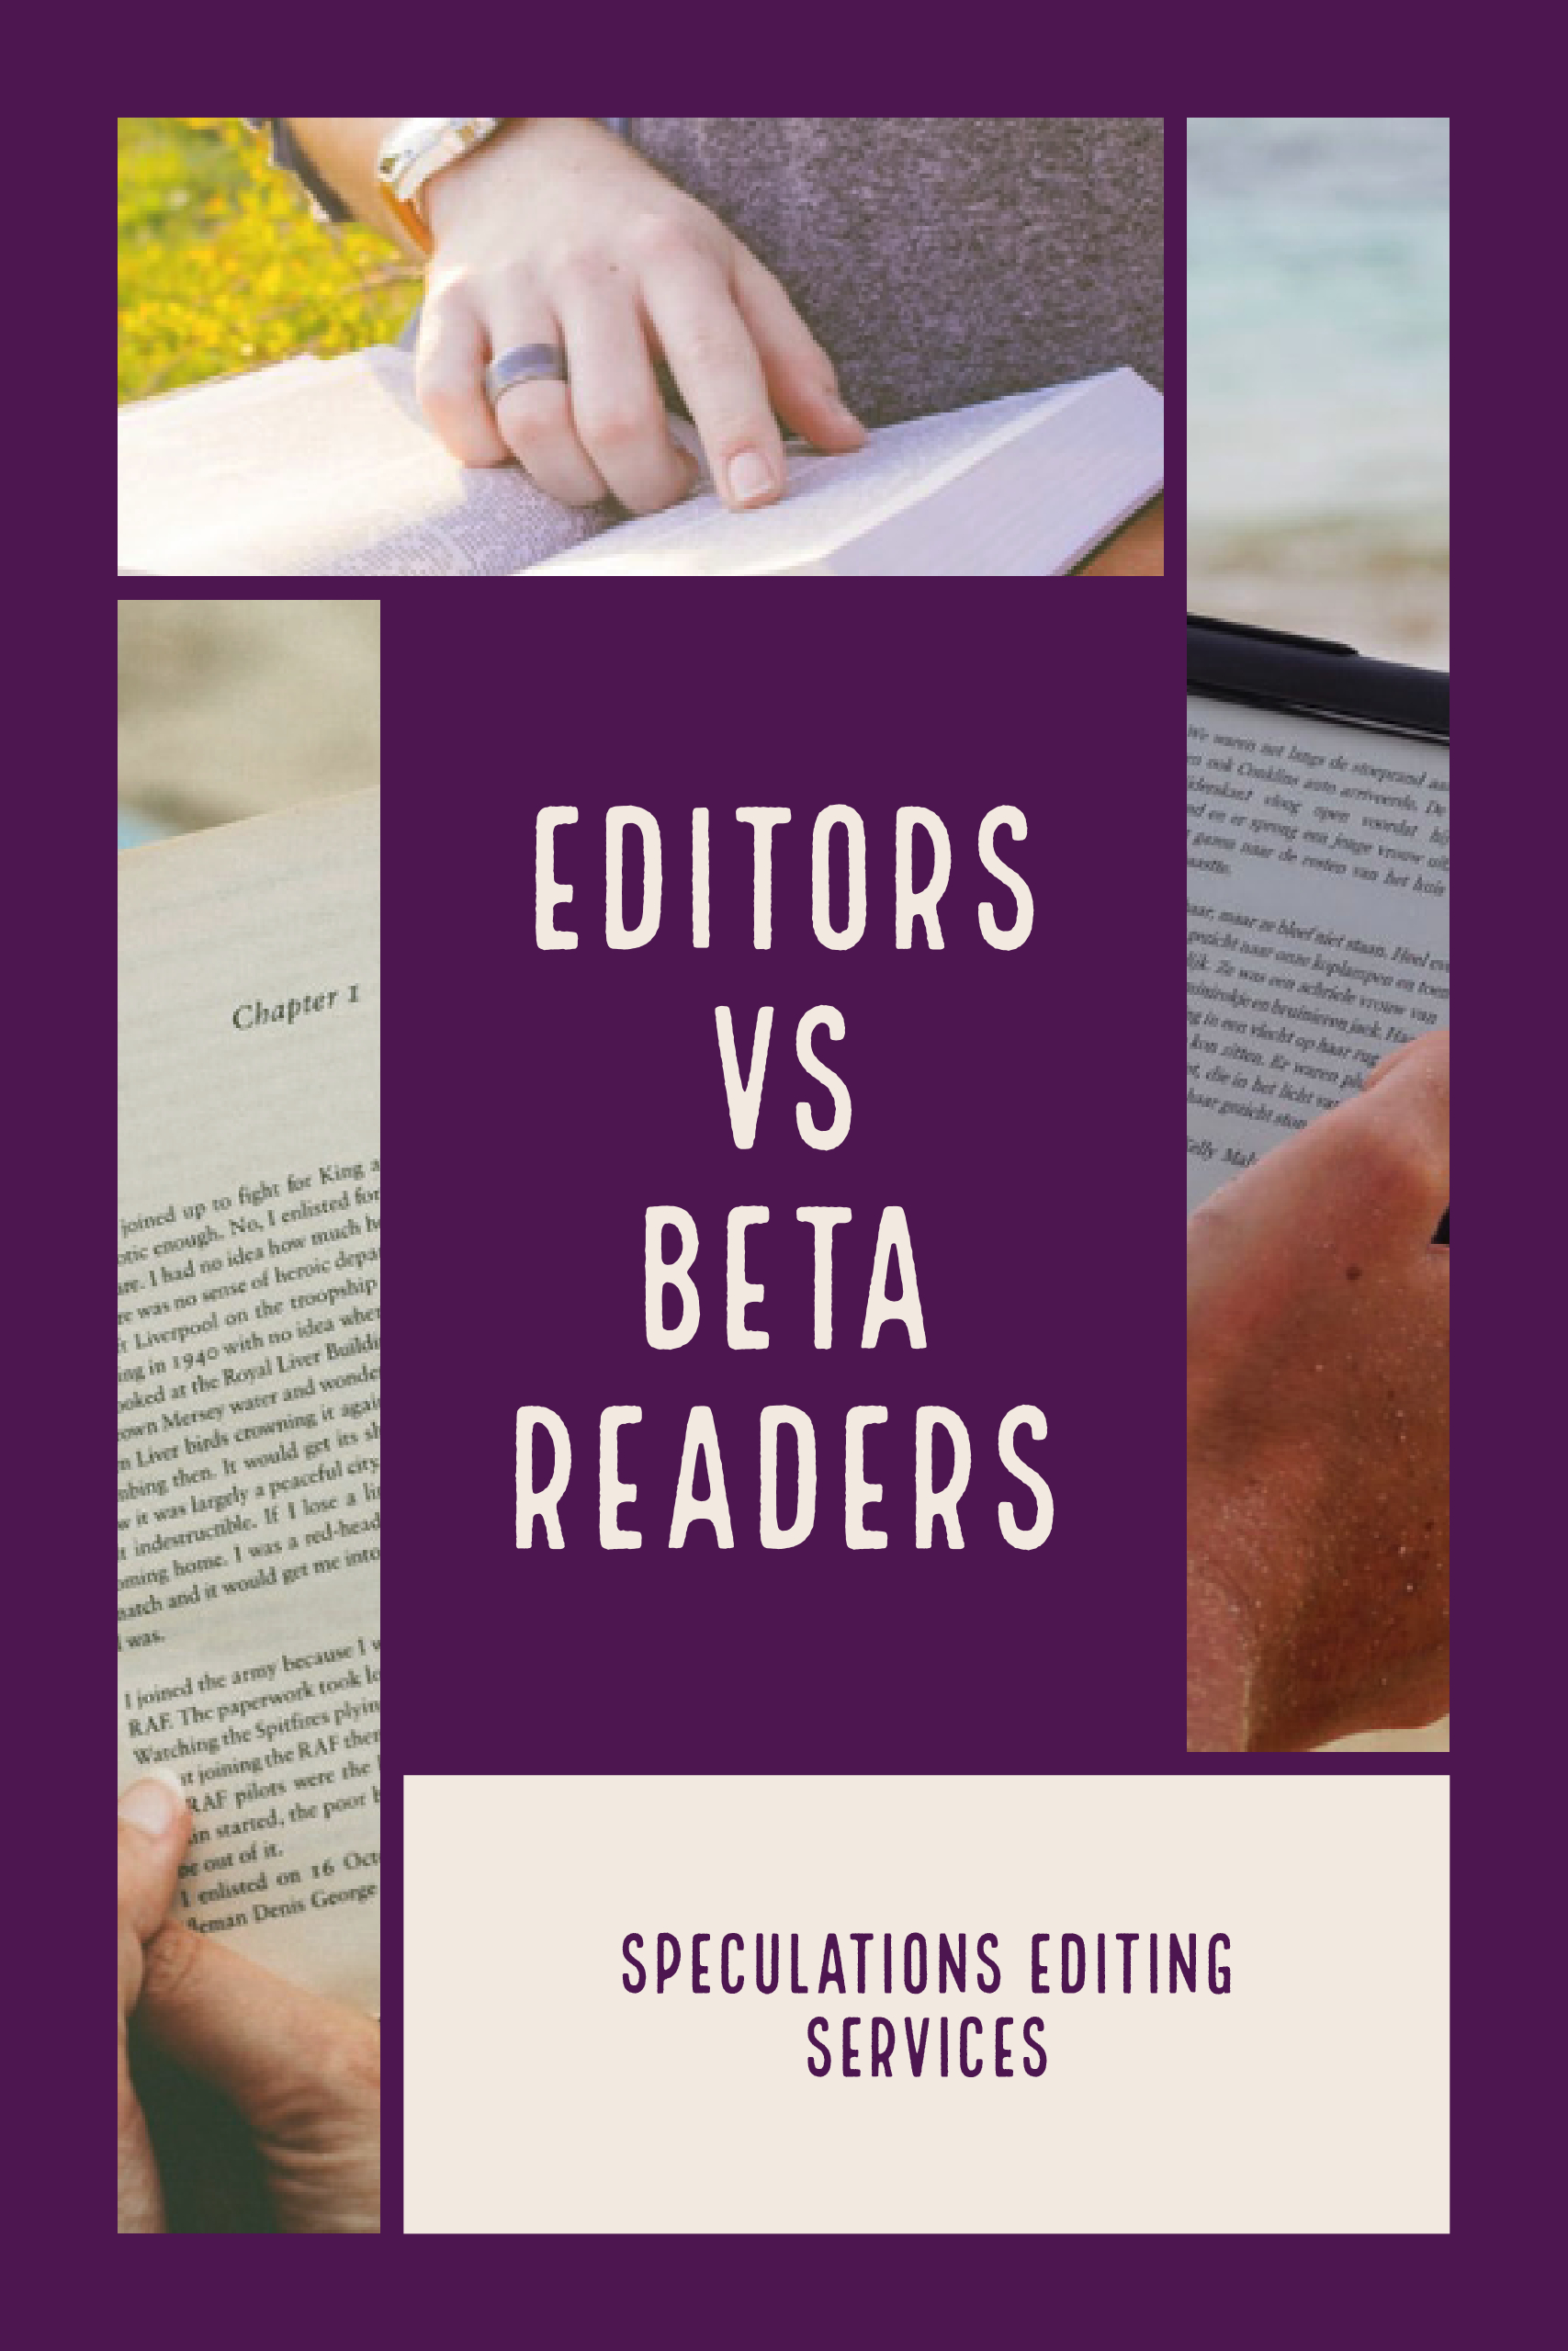 editors vs beta readers